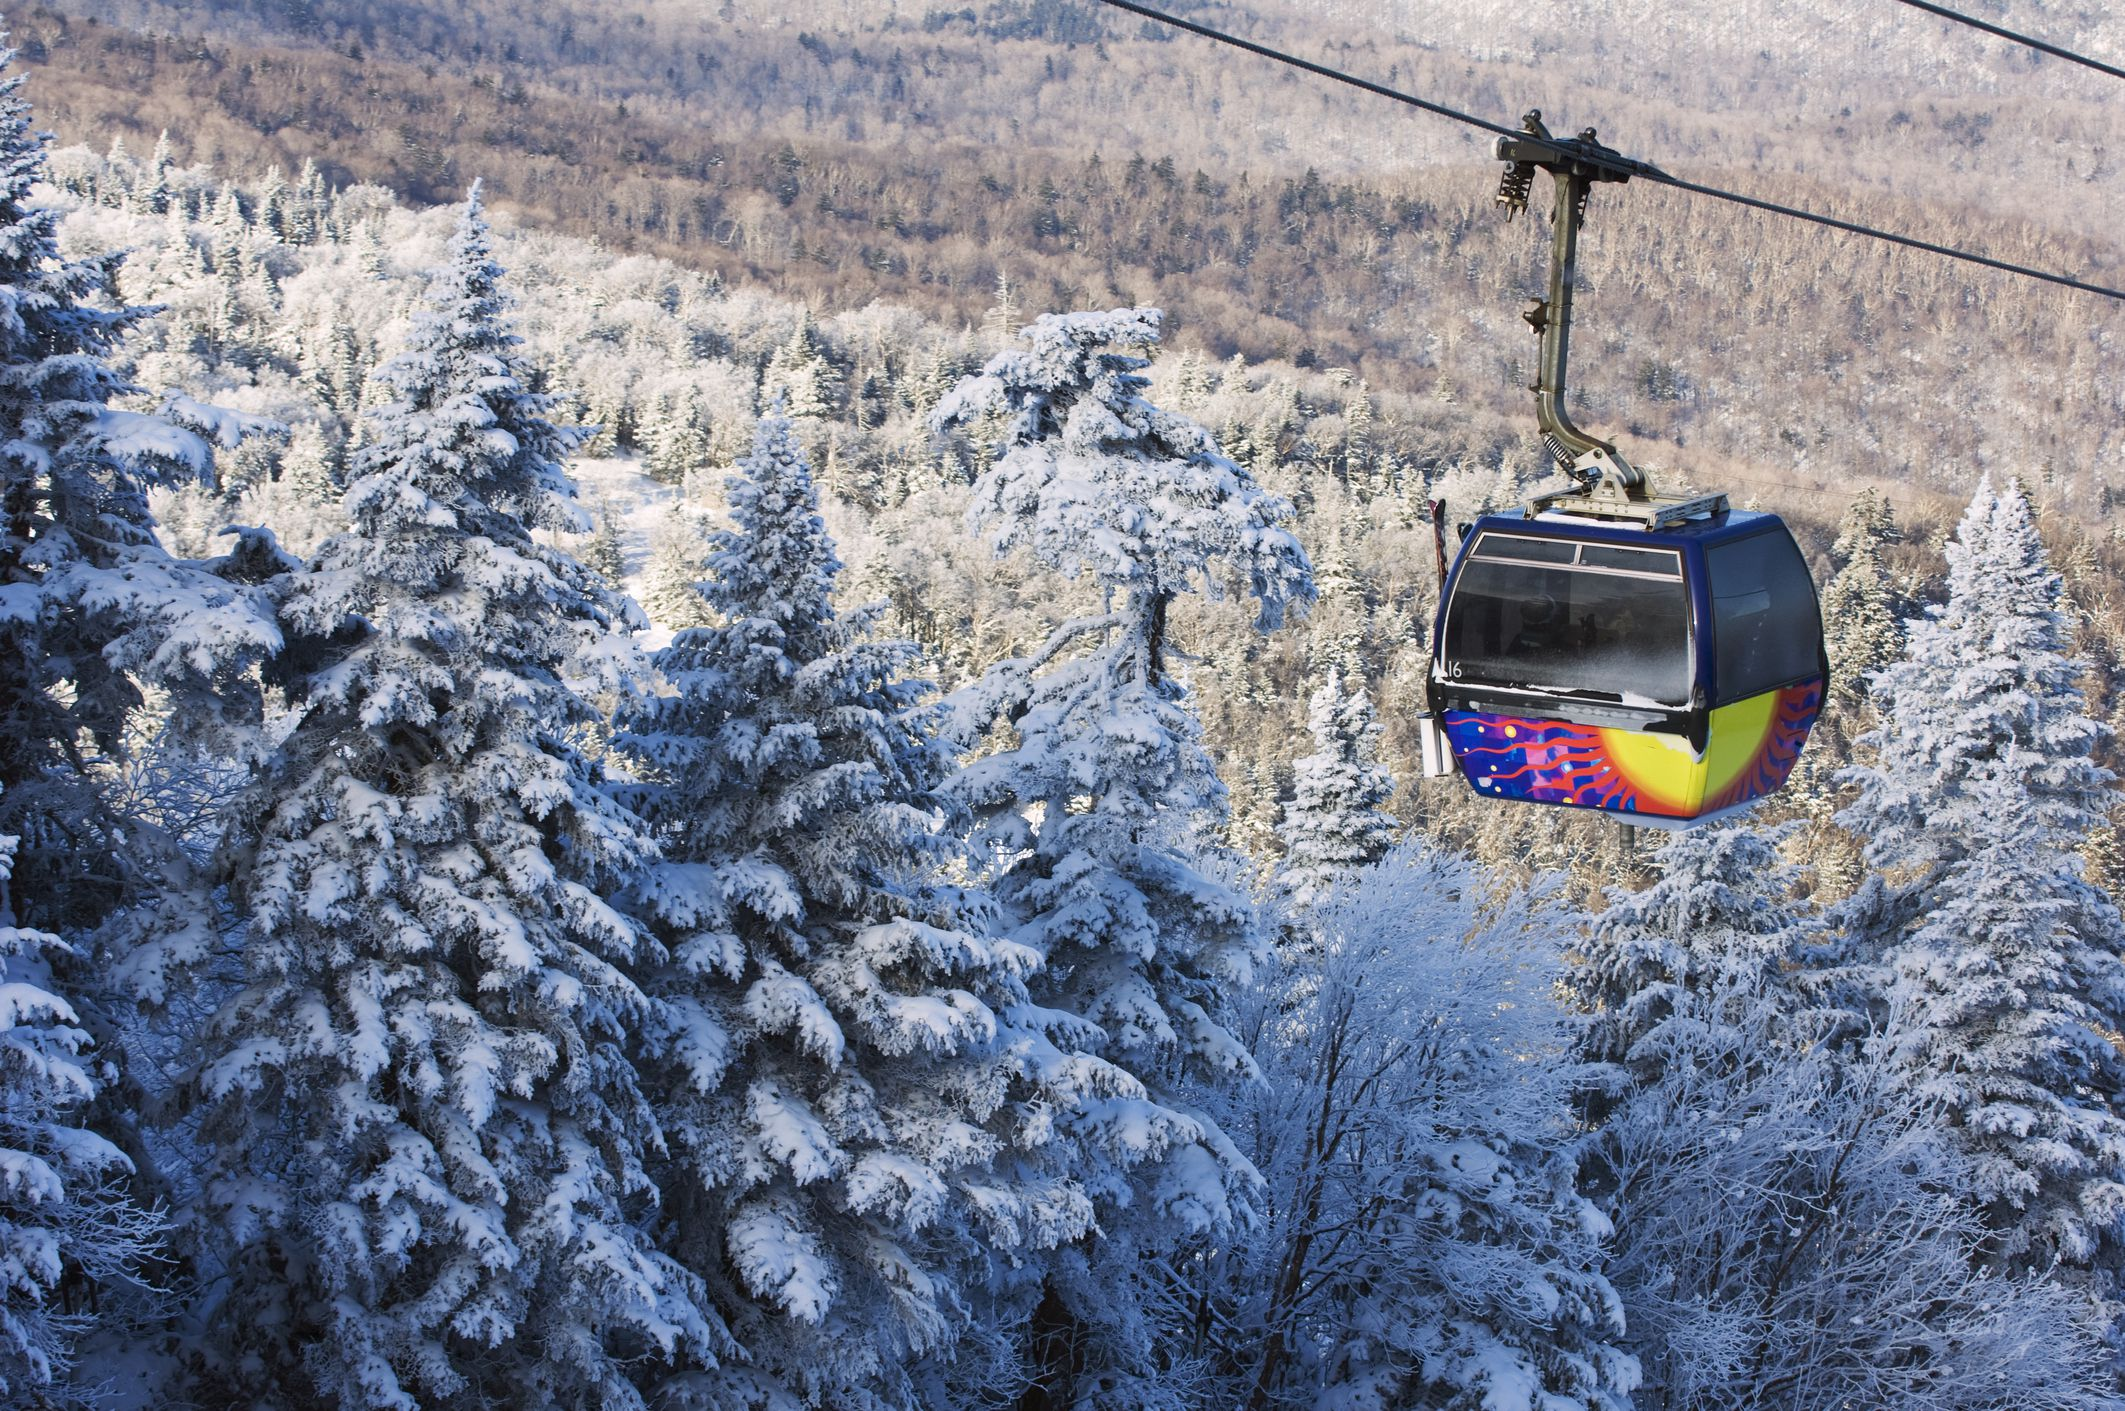 The Essential Guide to Killington Ski Resort, Vermont